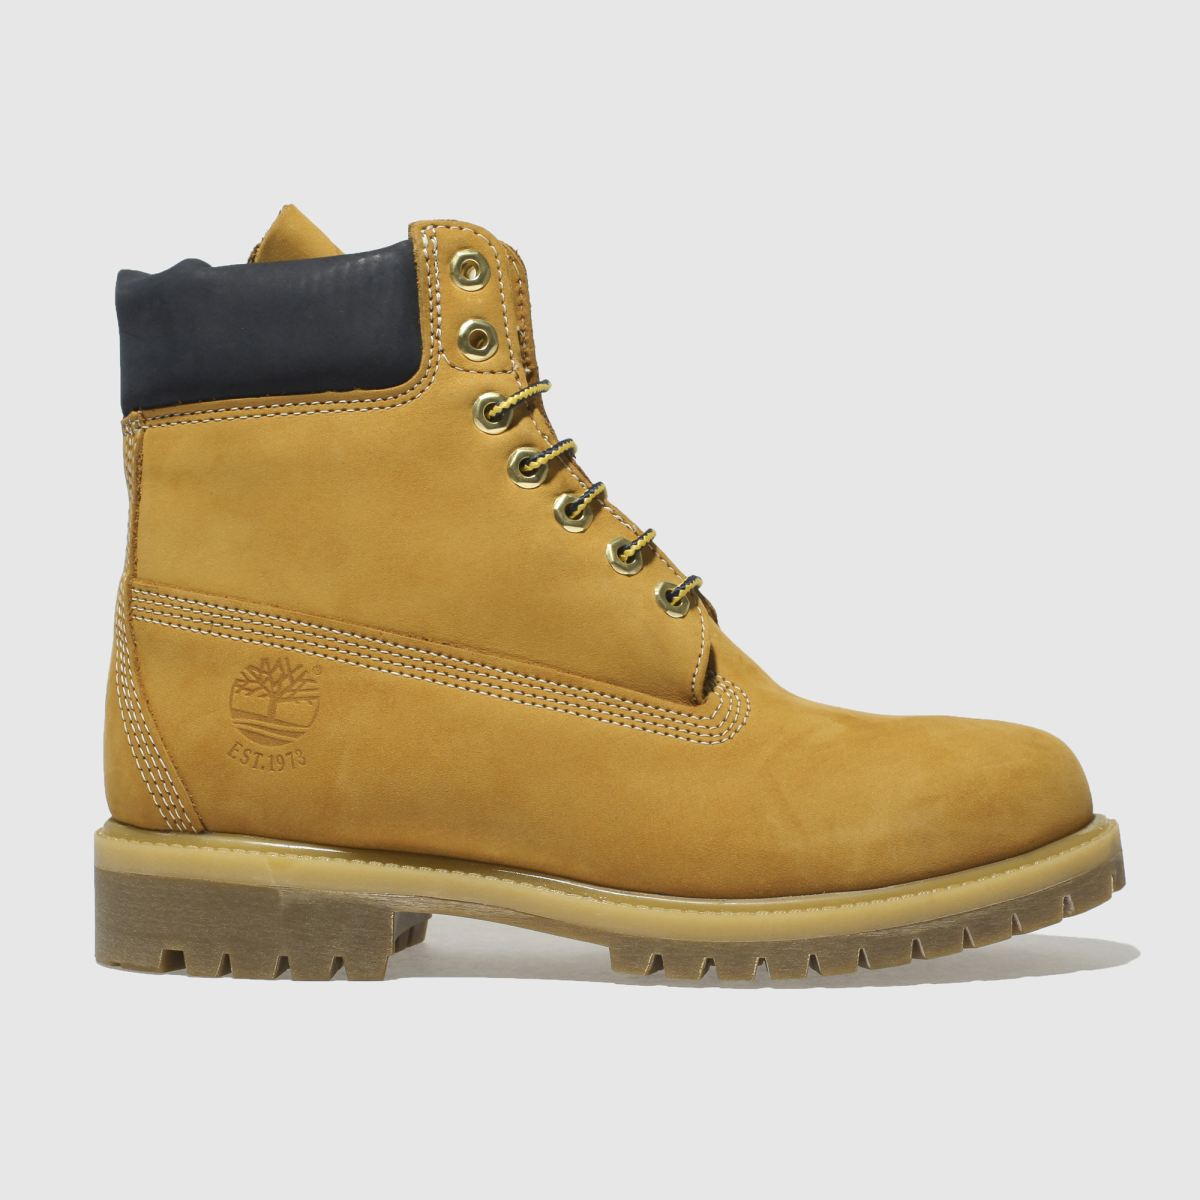 Timberland Natural Heritage 6in Premium Ltd Boots